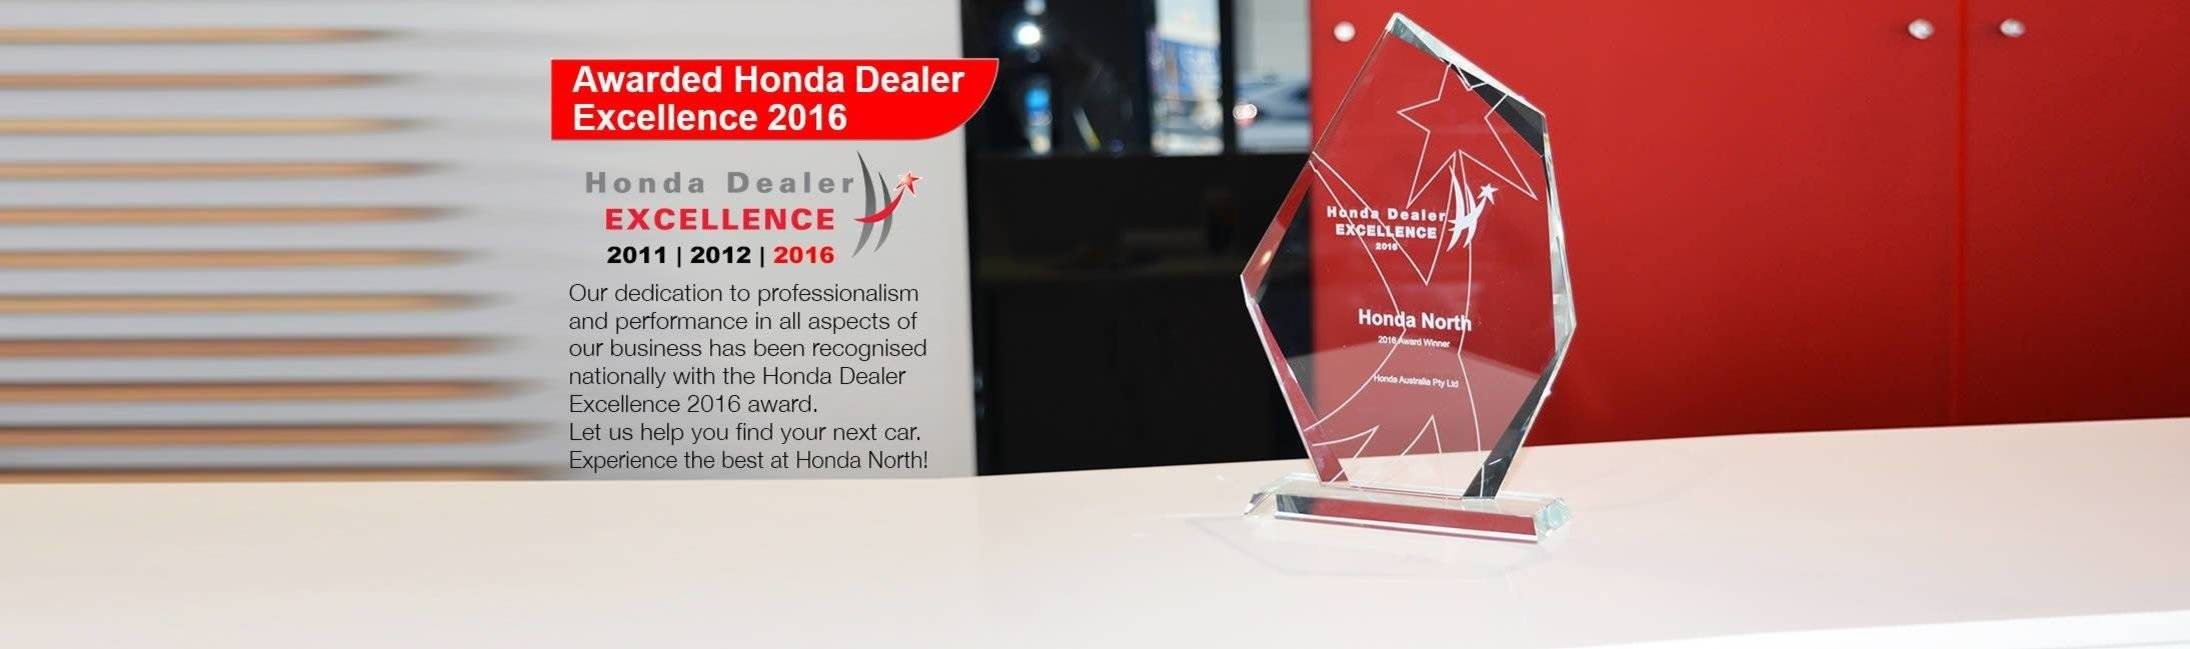 Honda North Special Offers